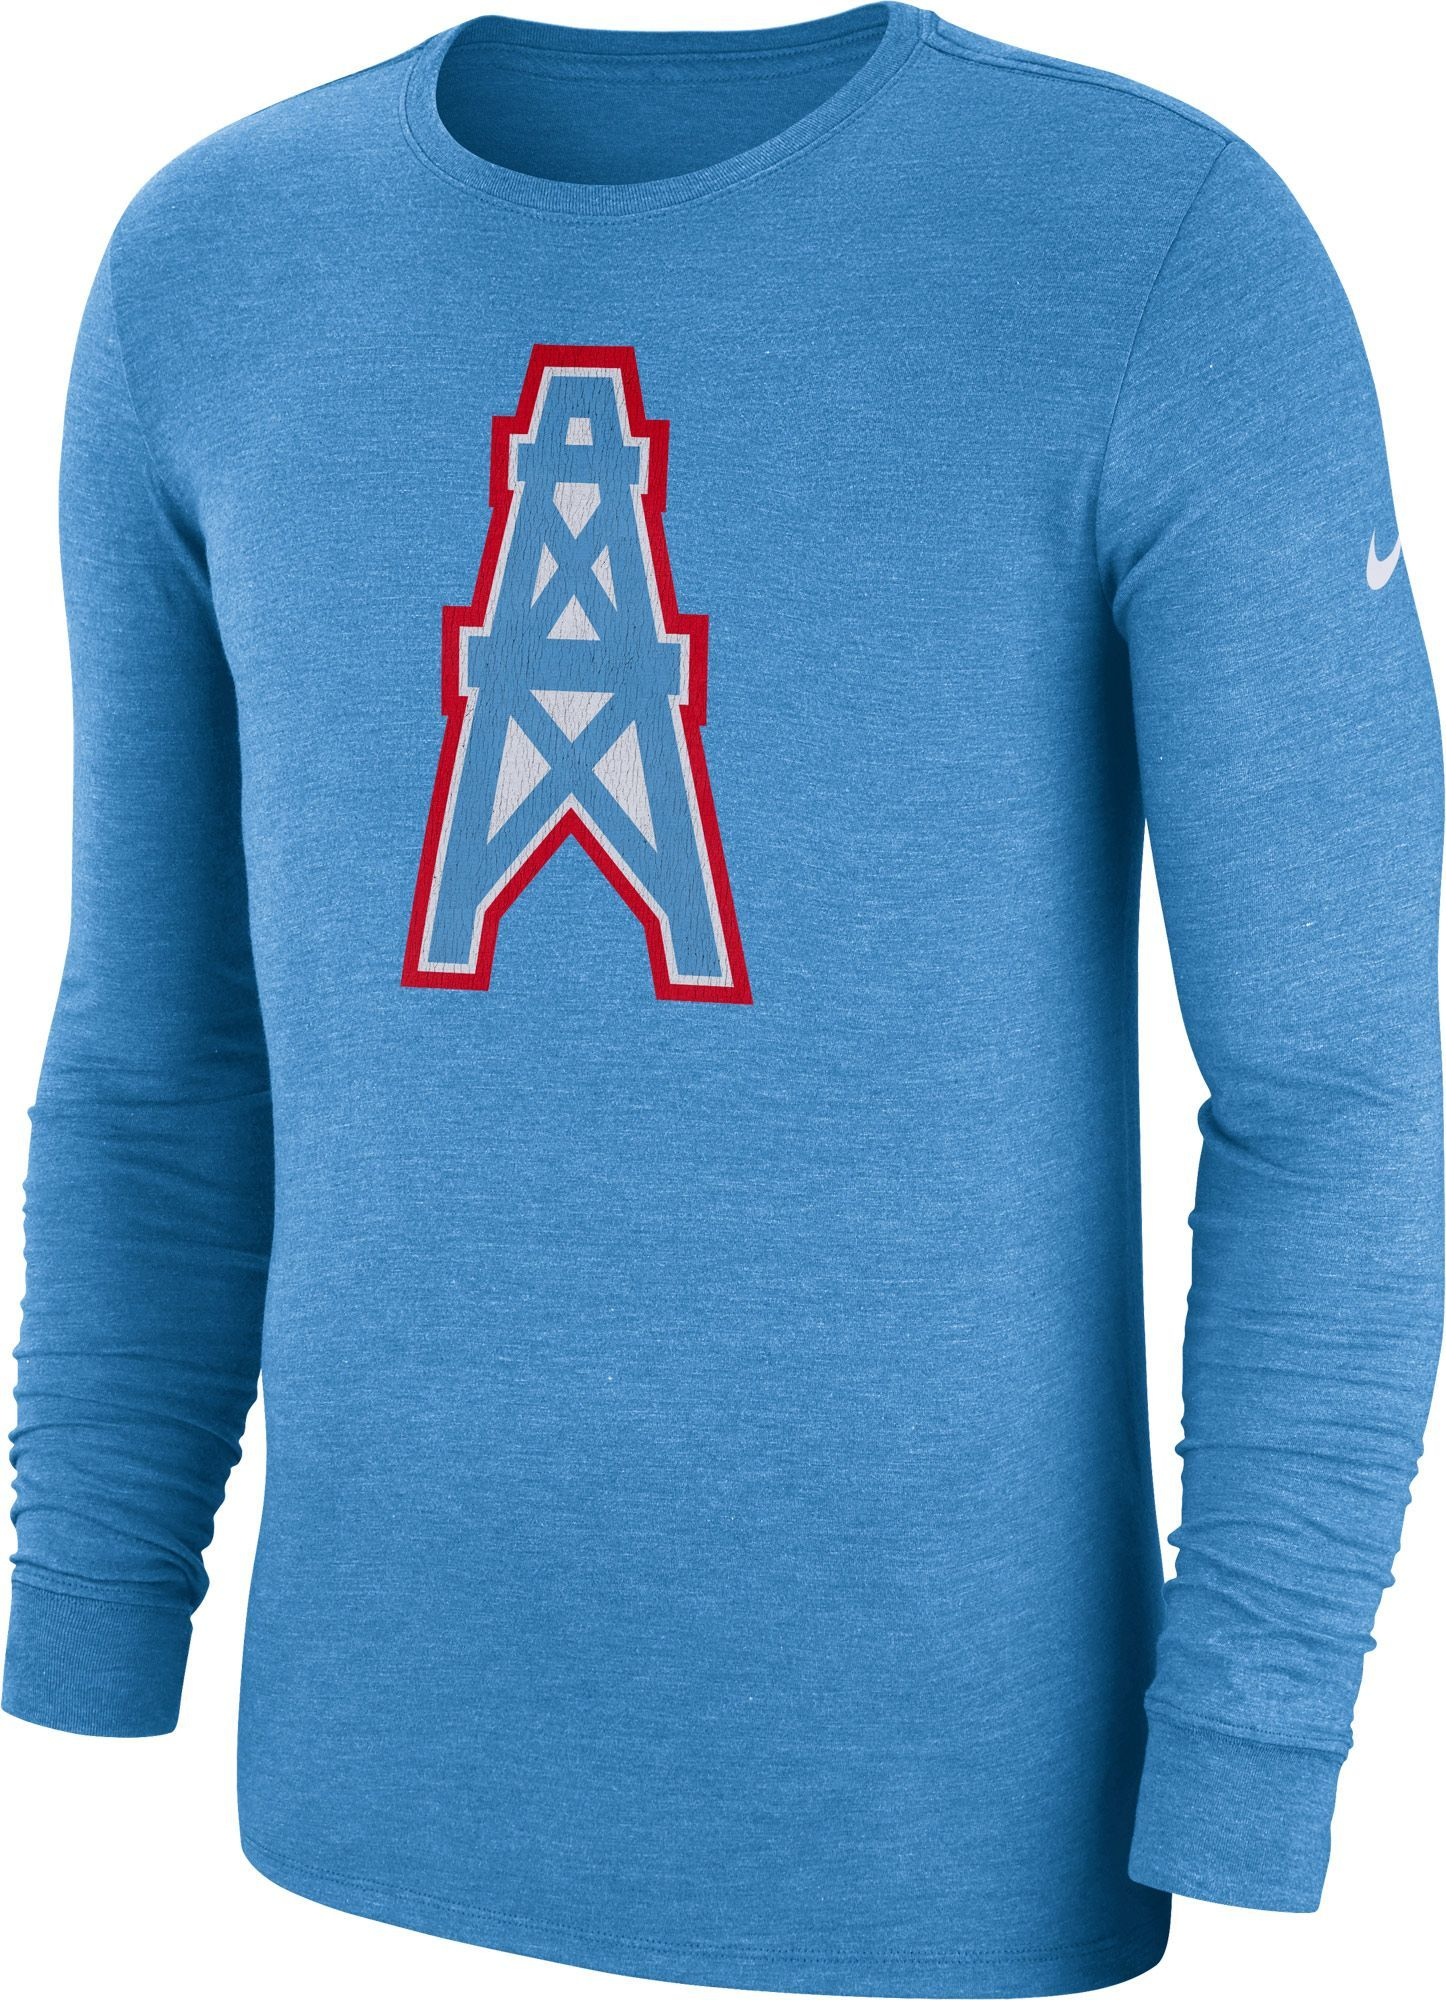 Nike Men s Tennessee Tri-Blend Historic Crackle Blue Long Sleeve Shirt 2dea014b6